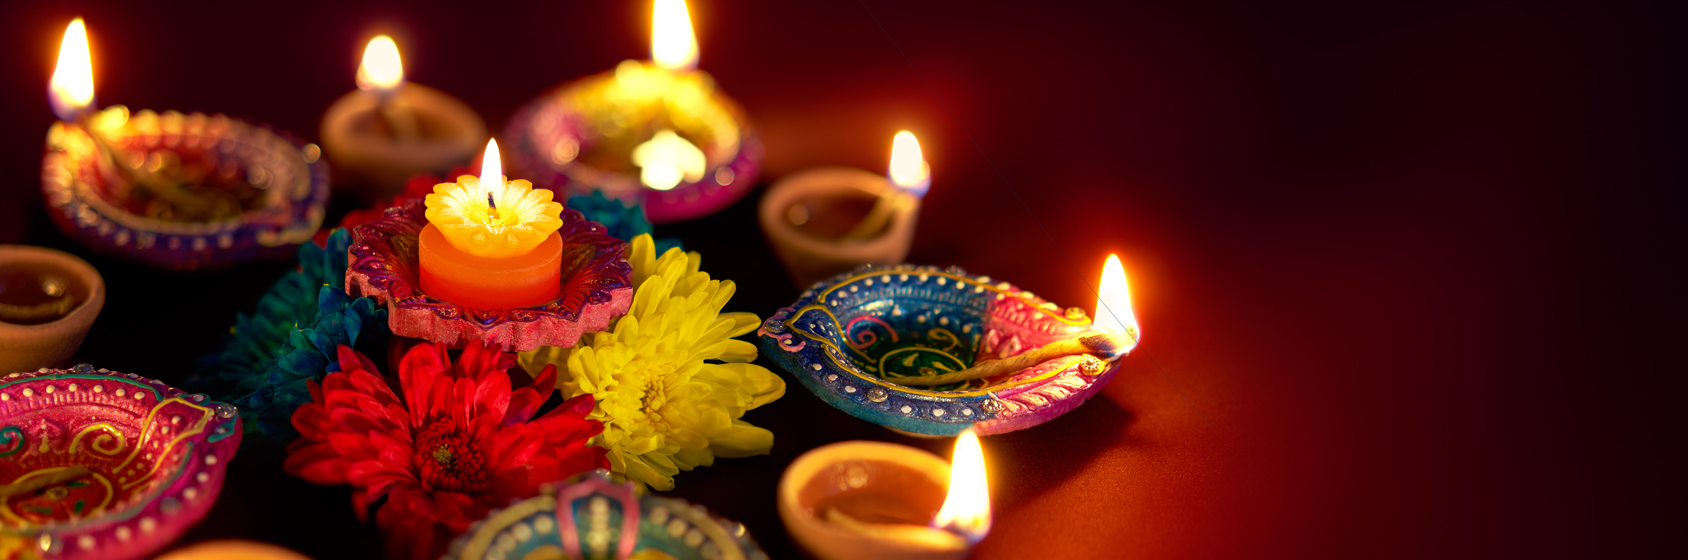 Celebrate Diwali, The Indian Festival Of Lights at Atlantis, The Palm